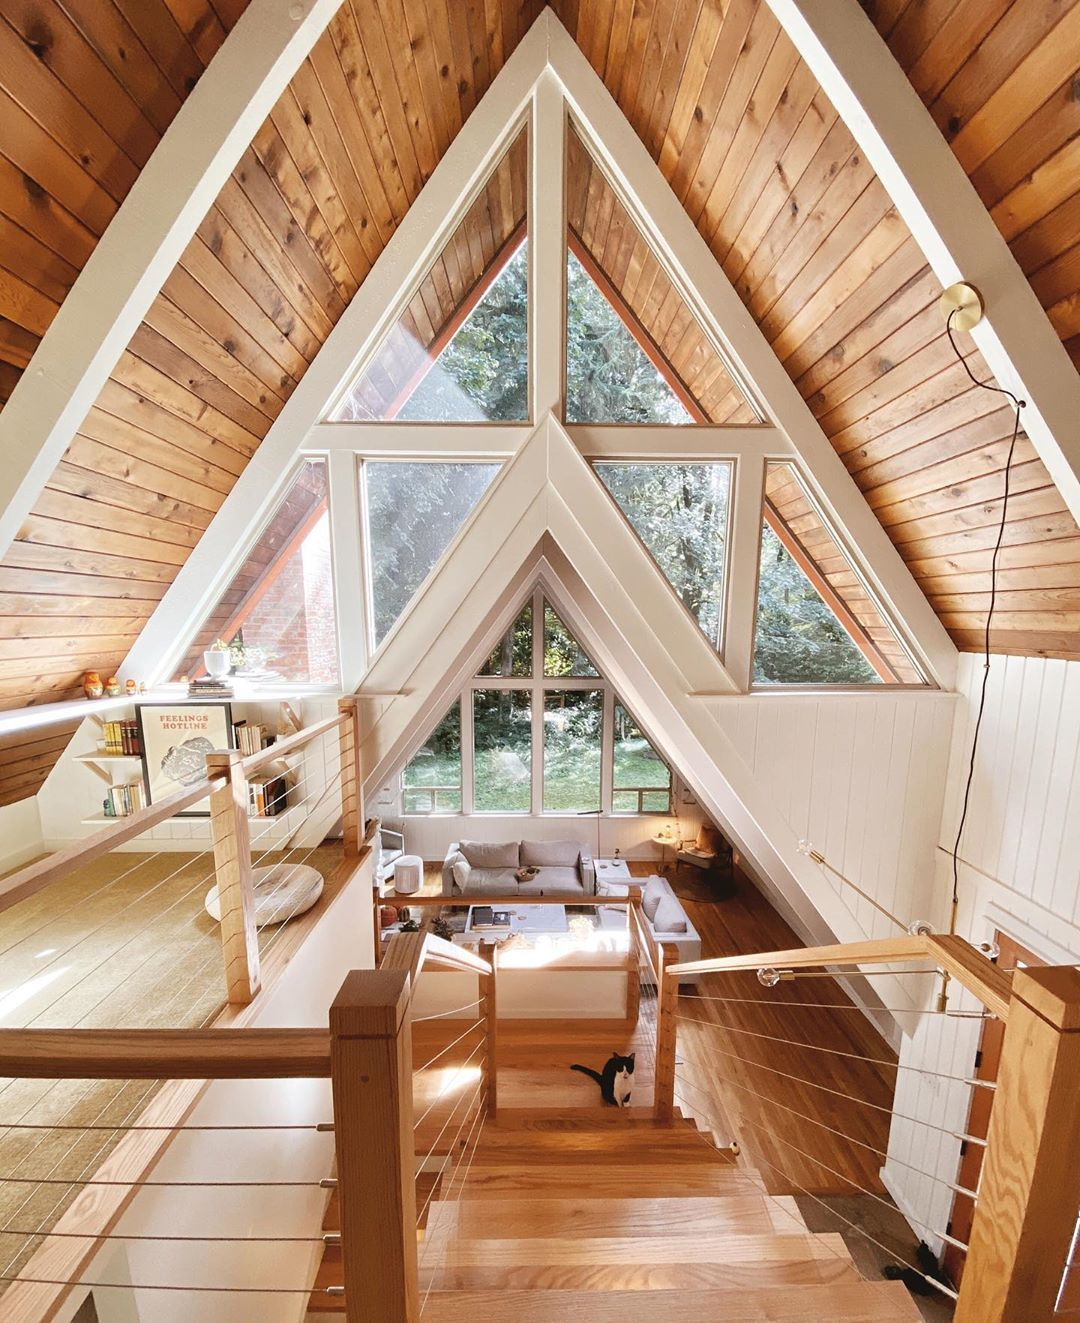 The Kindly Cabin On Instagram Good Morning Everyone It S Not This Sunny At The Cabin Today But It Was A Few Triangle House Cabin House Plans A Frame House